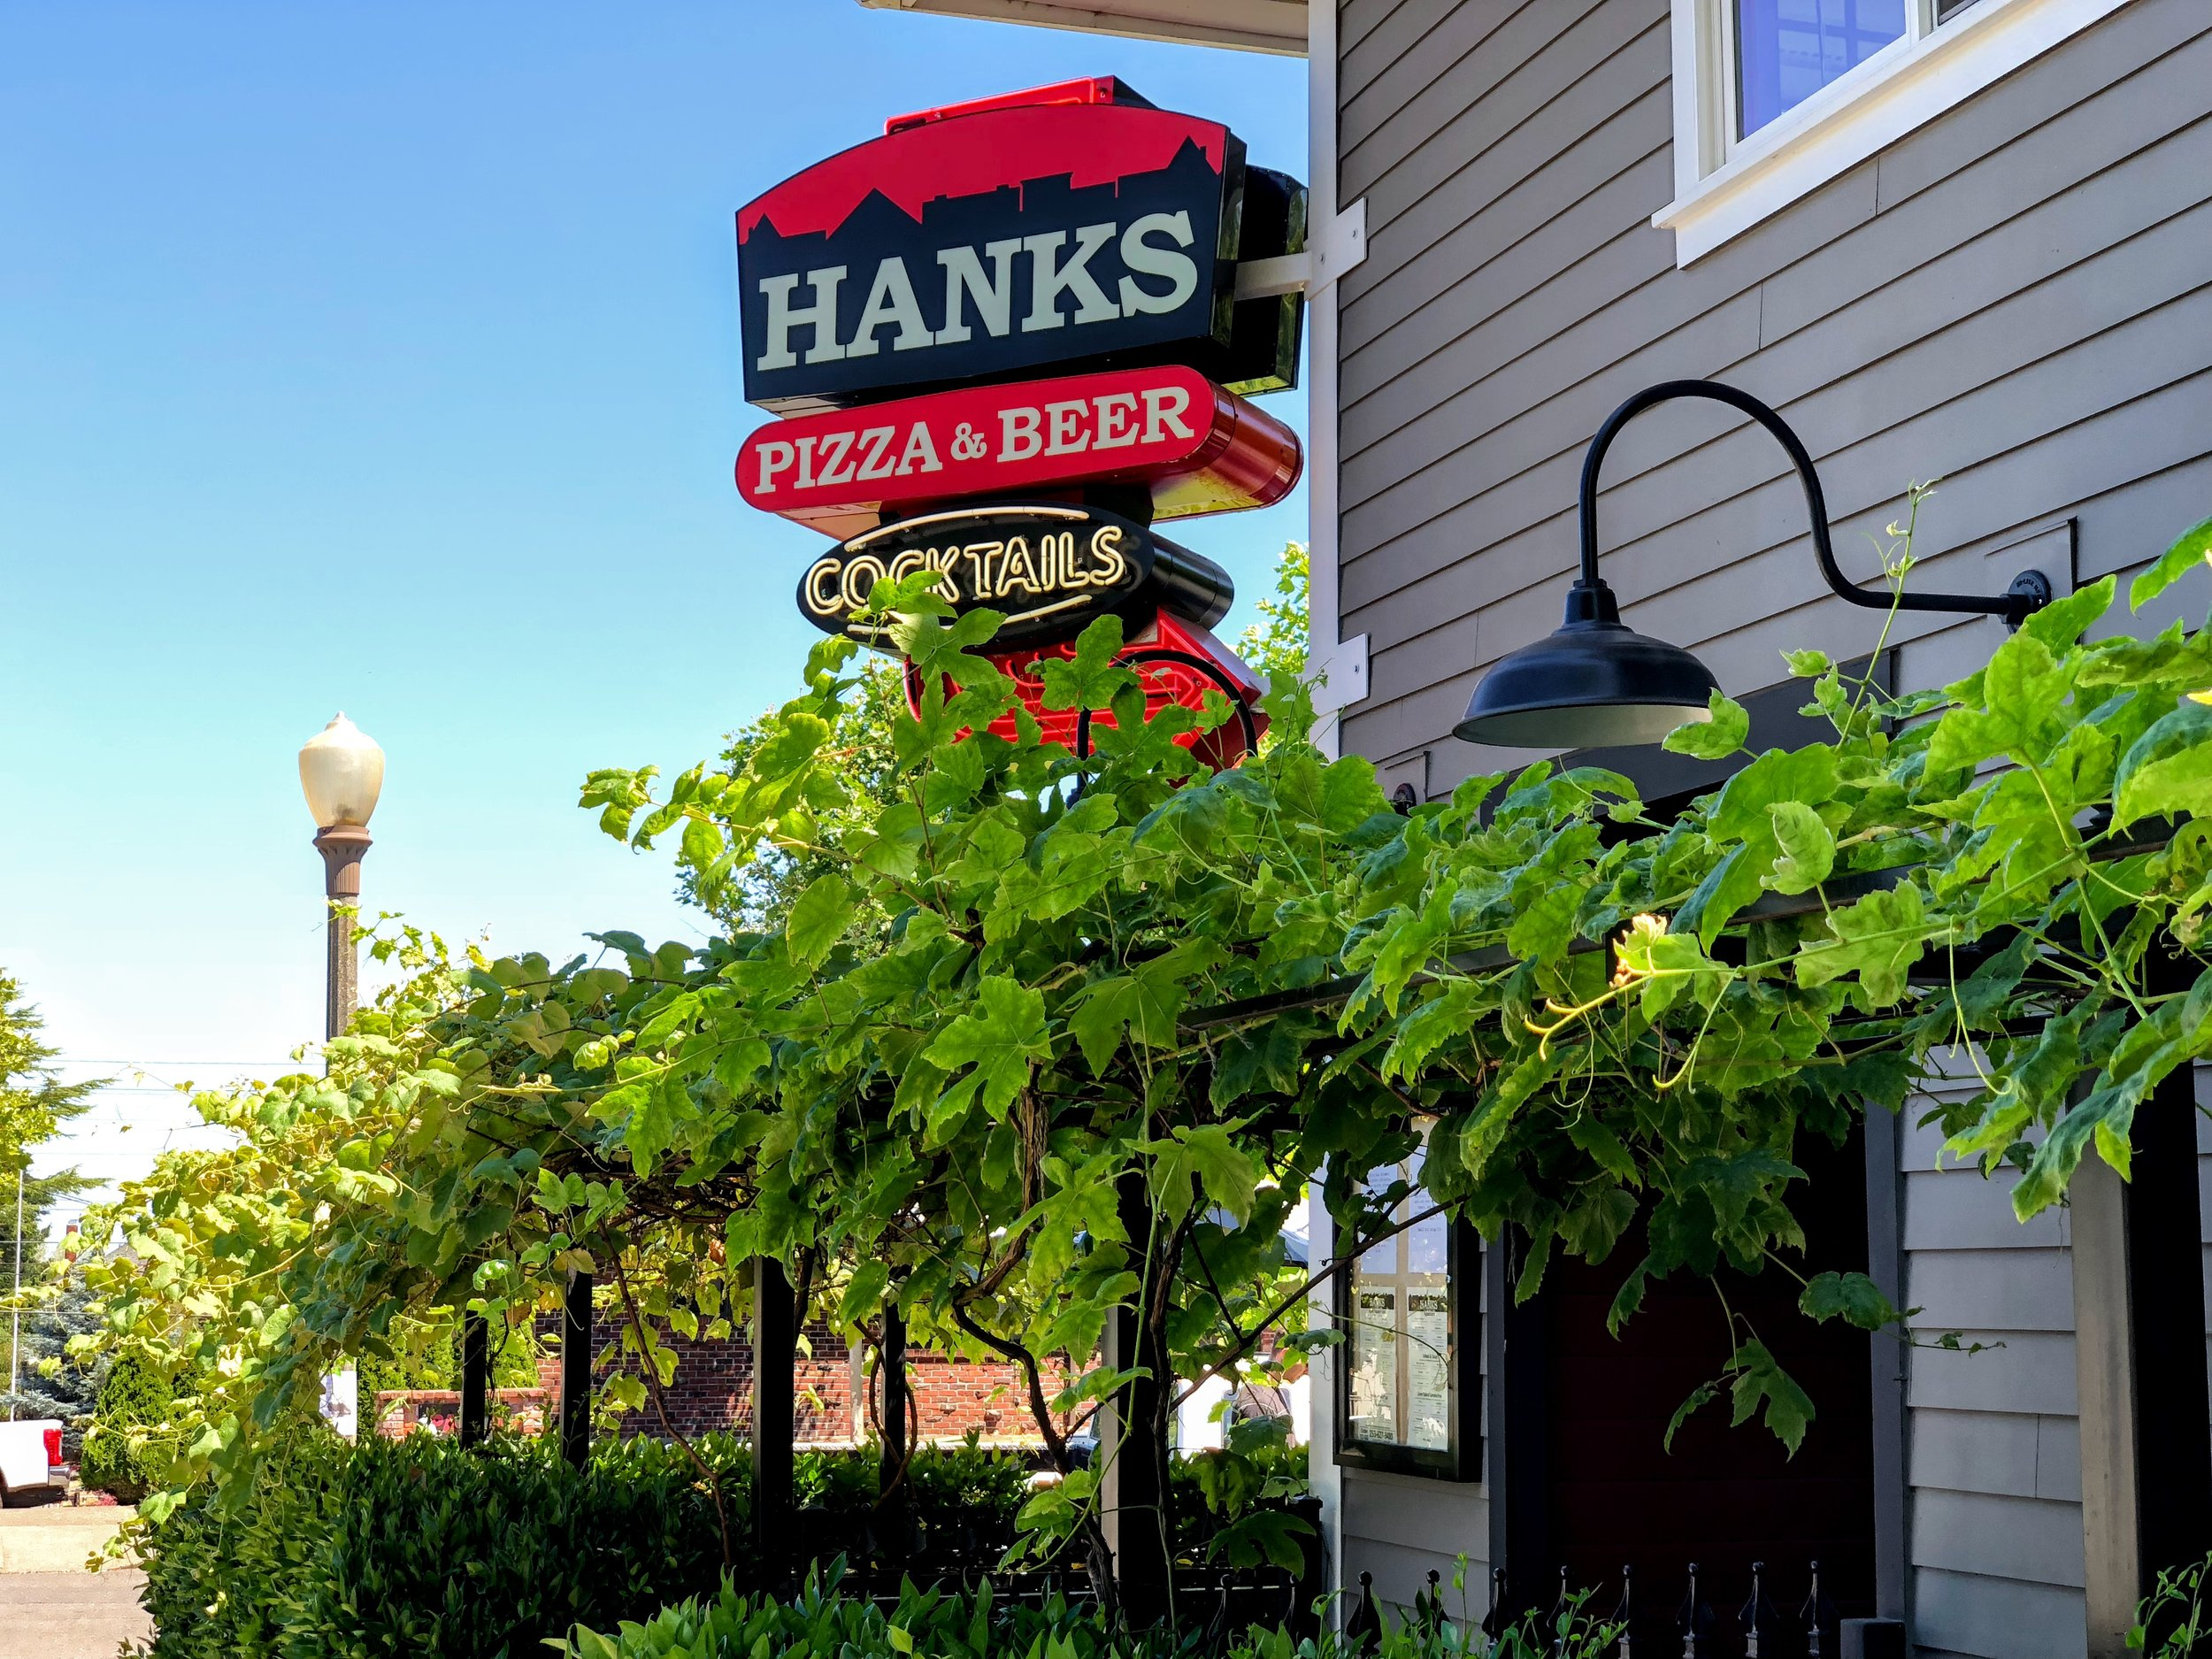 Hanks with its renovated polished wood interior and beautiful patio is just 2 blocks away!